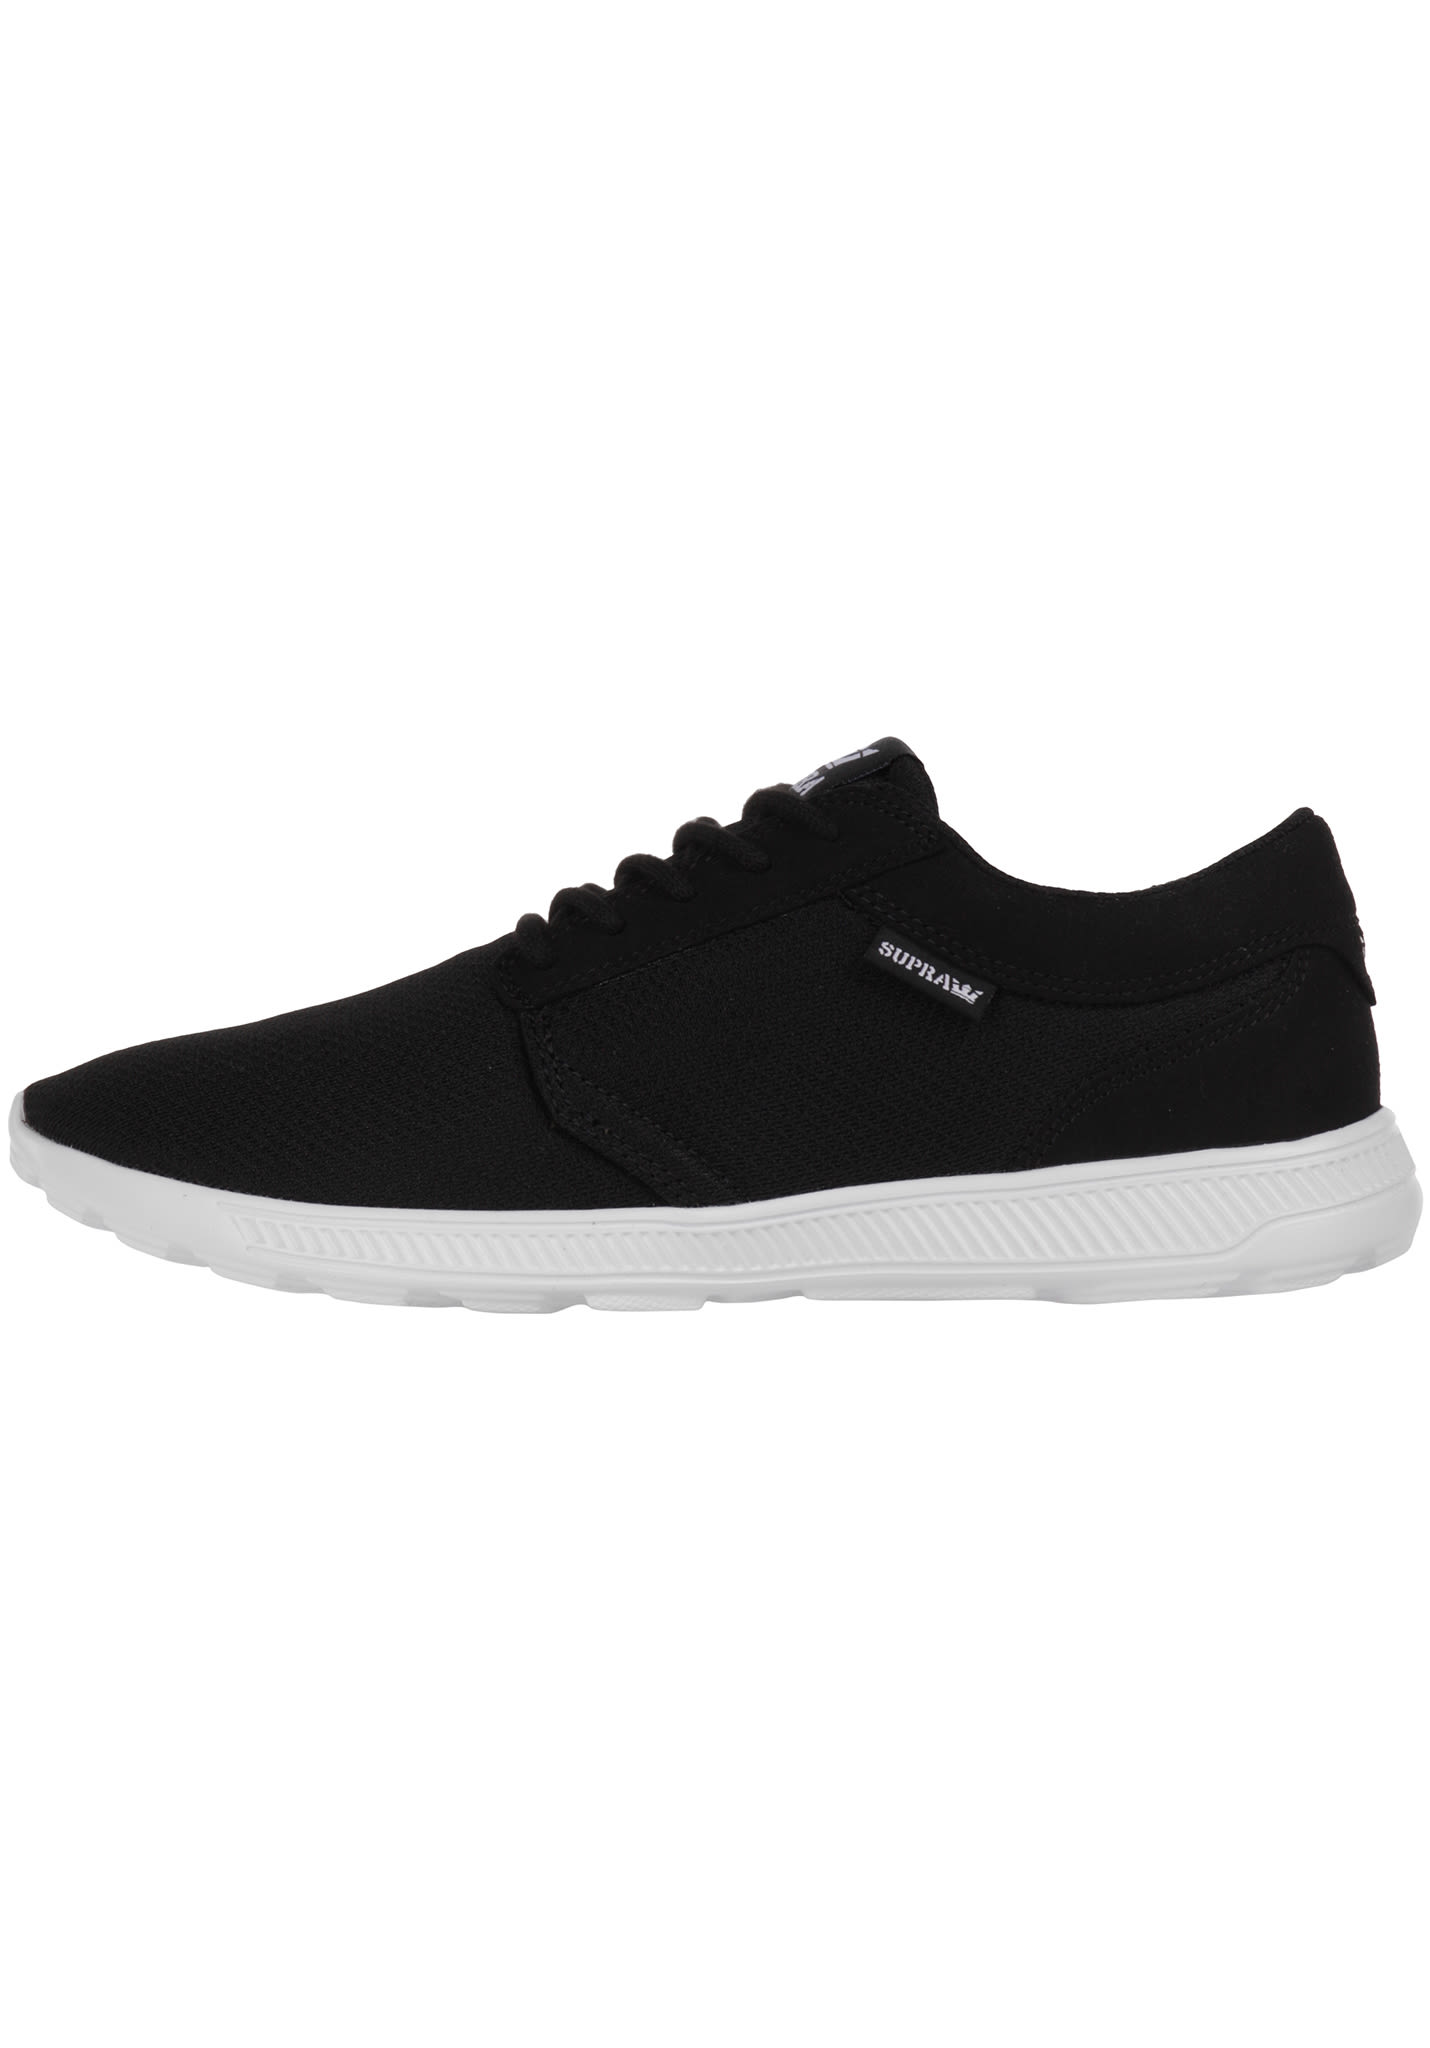 SUPRA Hammer Run - Sneakers for Men - Black - Planet Sports 07a9caae5f